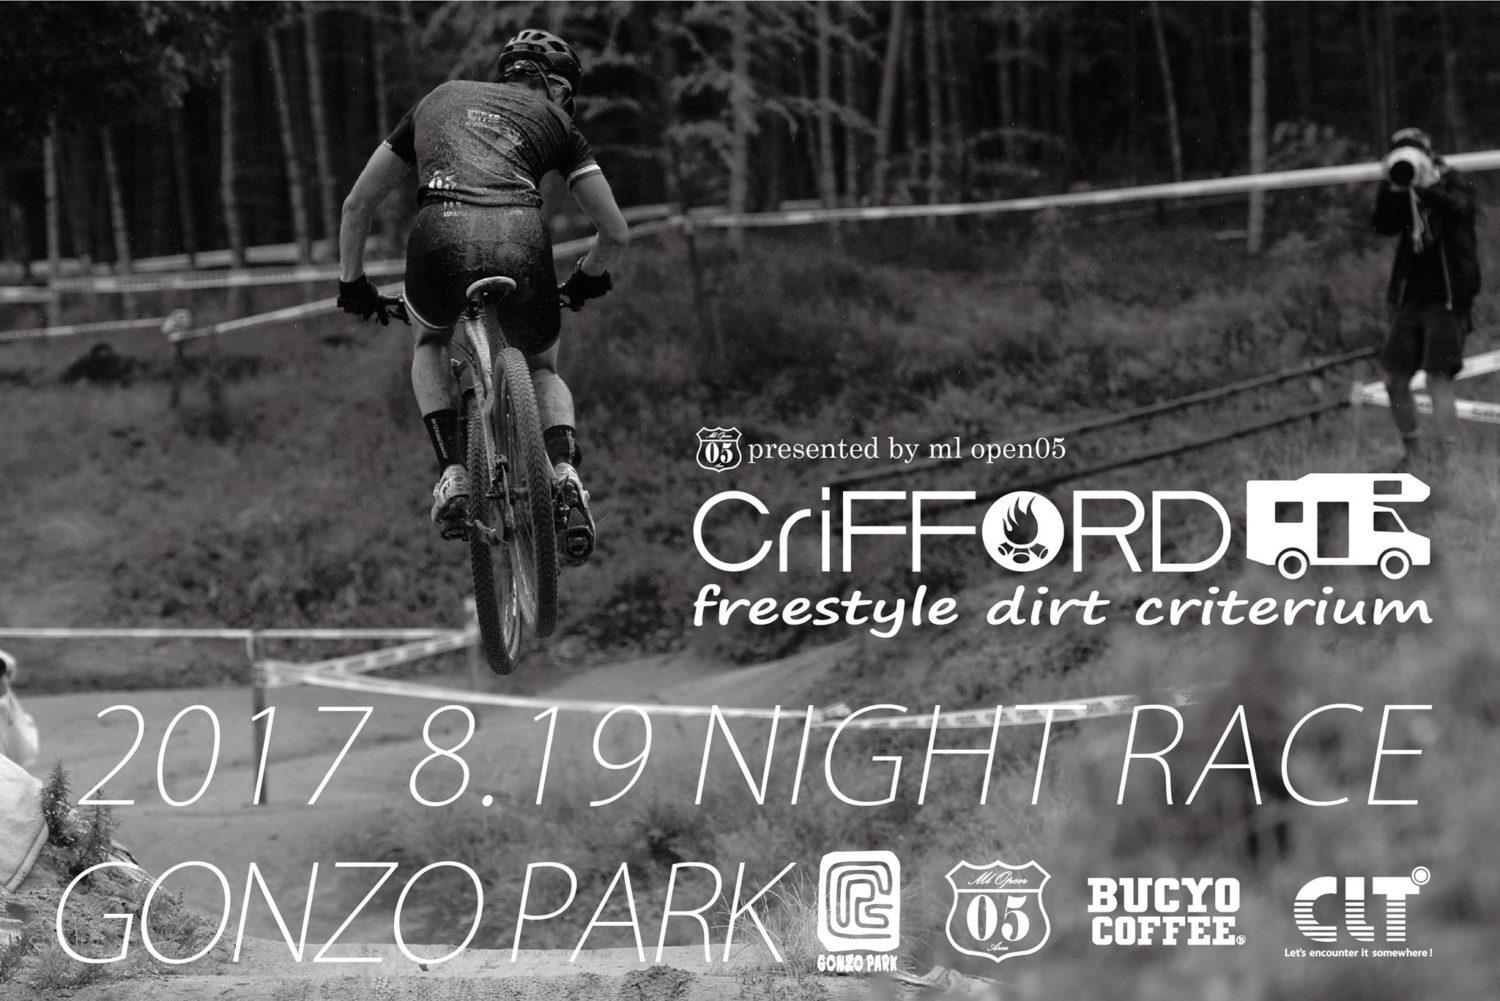 Freestyle Dirt Criterium Crifford